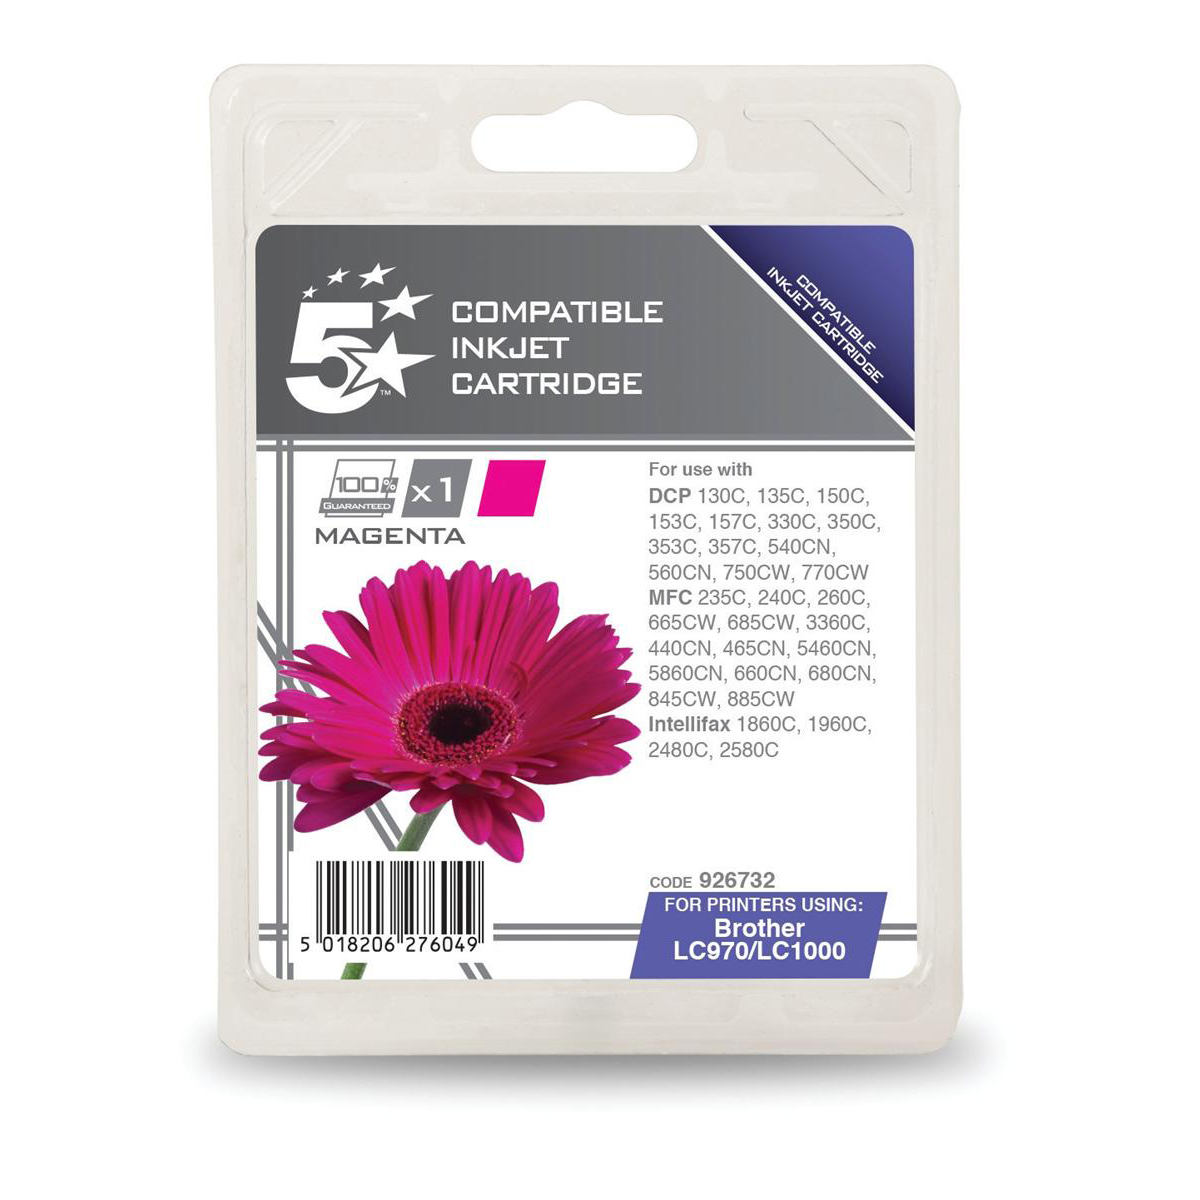 5 Star Office Remanufactured Inkjet Cartridge Page Life 400pp Magenta [Brother LC1000M Alternative]